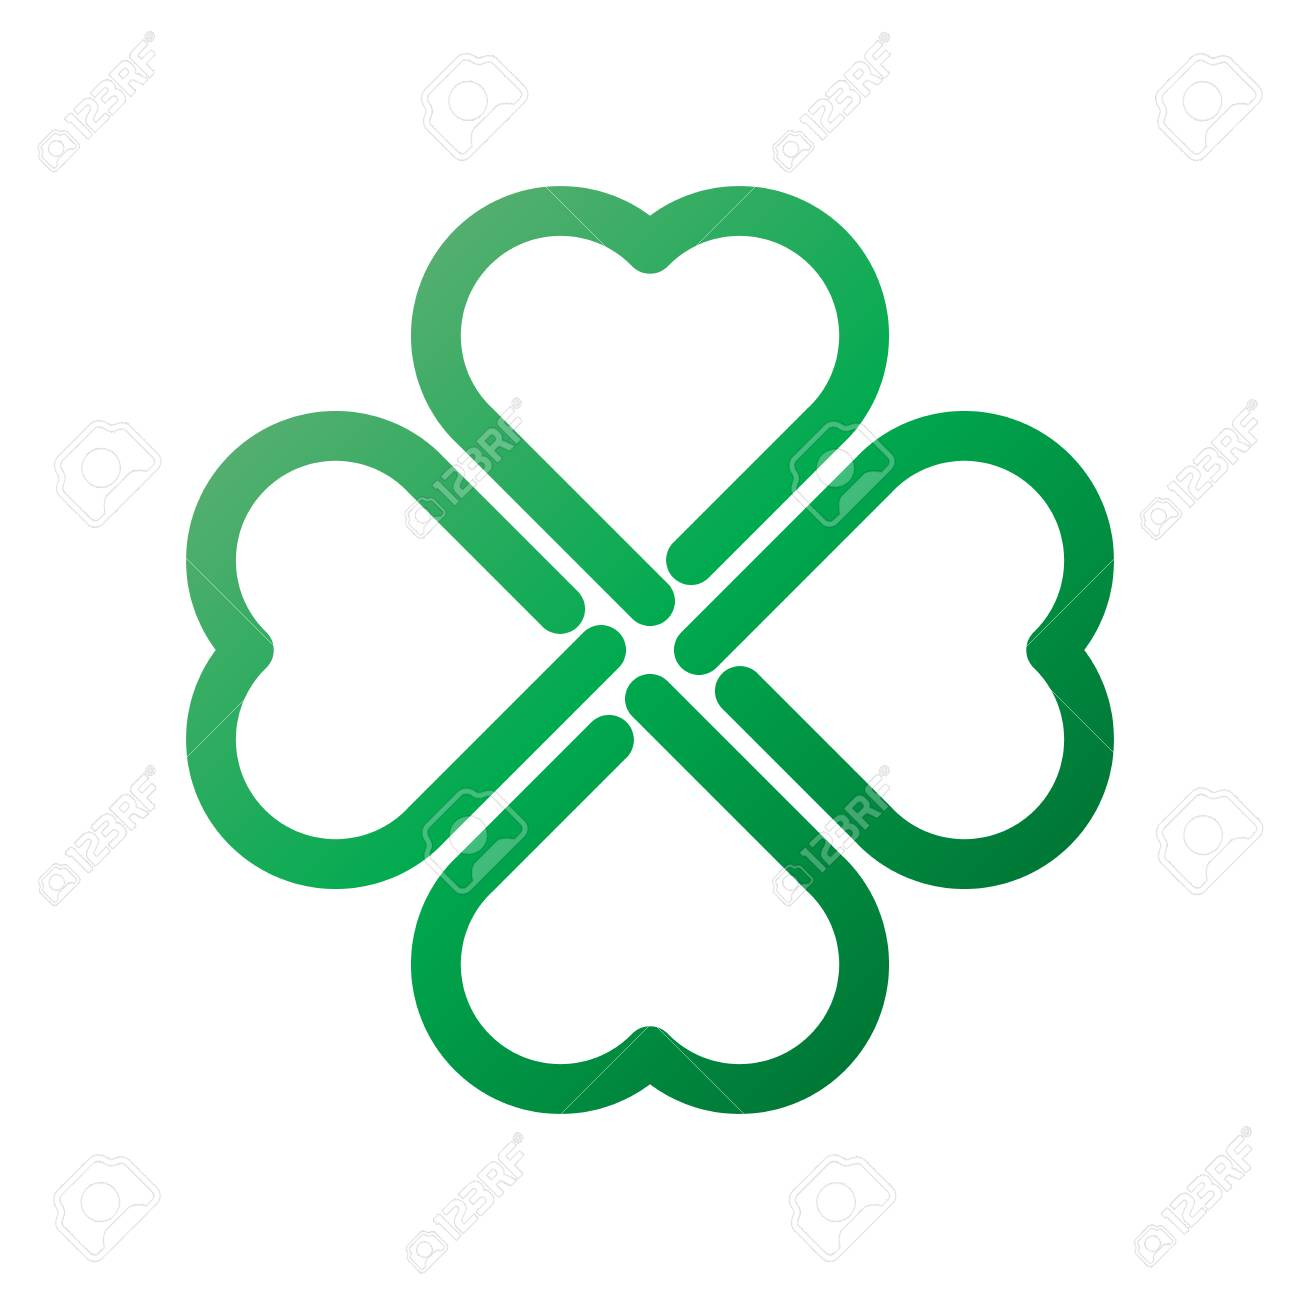 shamrock green gradient thick outline four leaf clover icon good luck theme design element